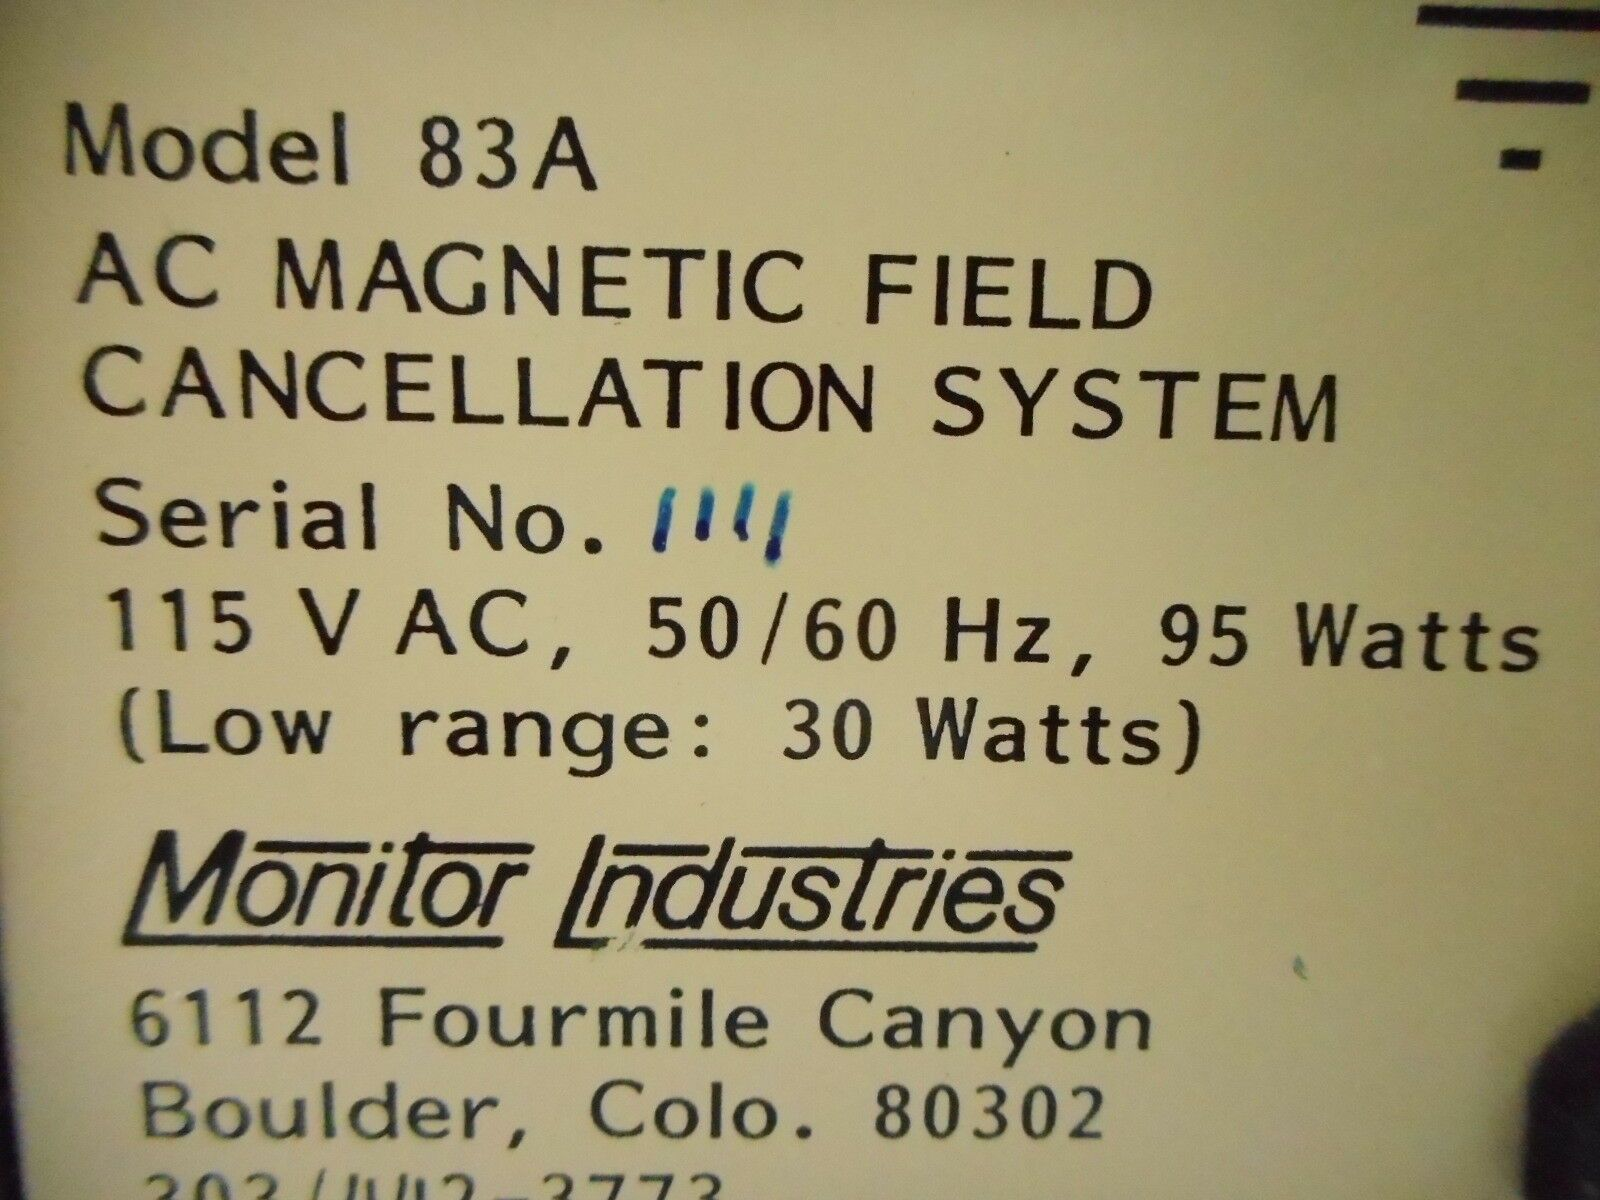 Monitor Industries Model 83A AC Magnetic Field Cancellation System Used